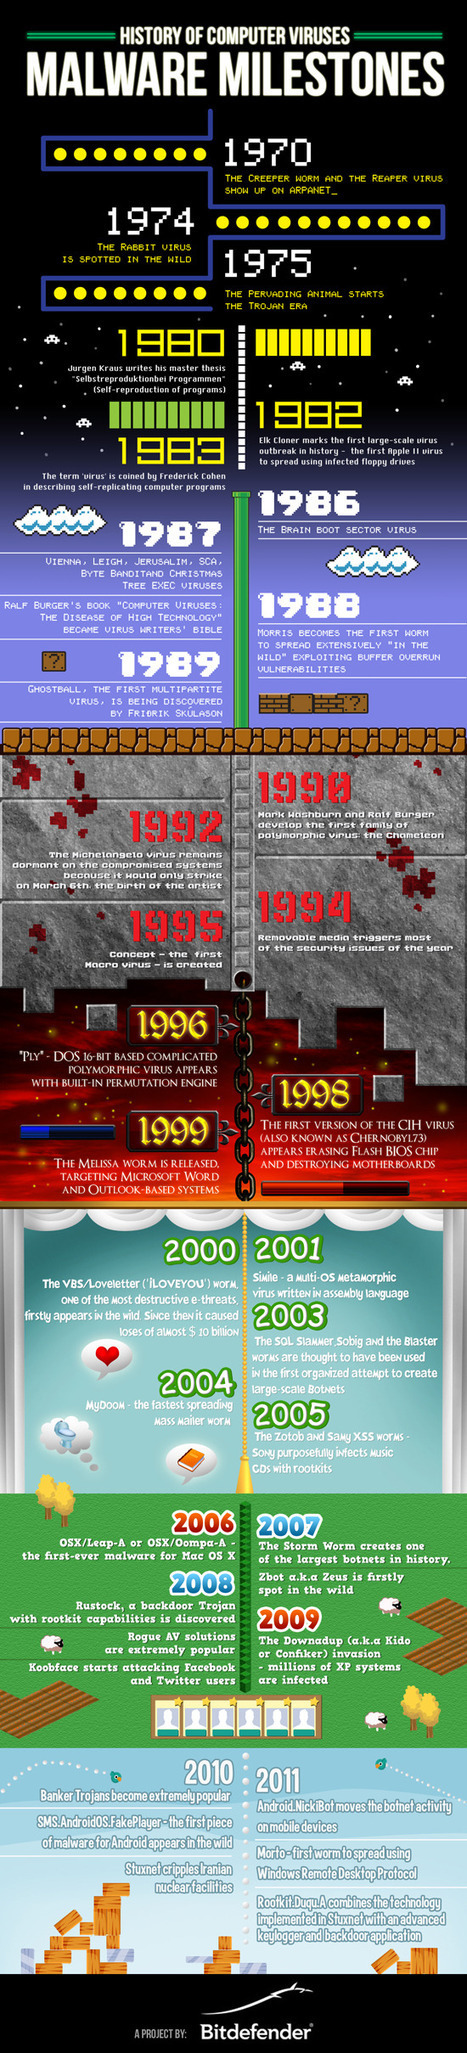 Infographic: Timeline and history of computer viruses | 1-MegaAulas - Ferramentas Educativas WEB 2.0 | Scoop.it